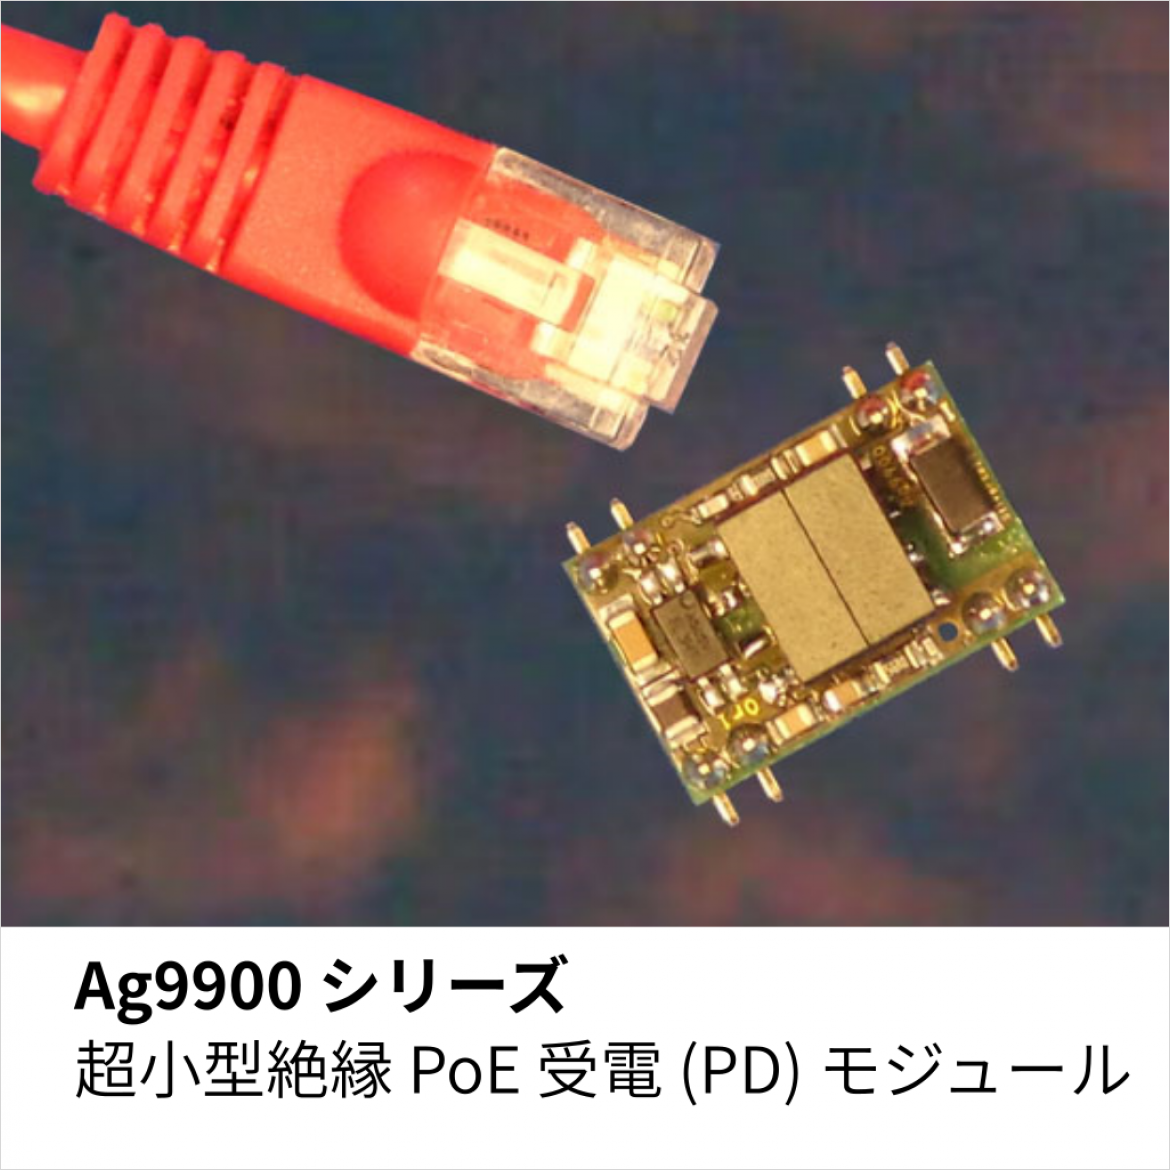 Power over Ethernet (PoE) 超小型絶縁受電 (PD) モジュール Ag9900